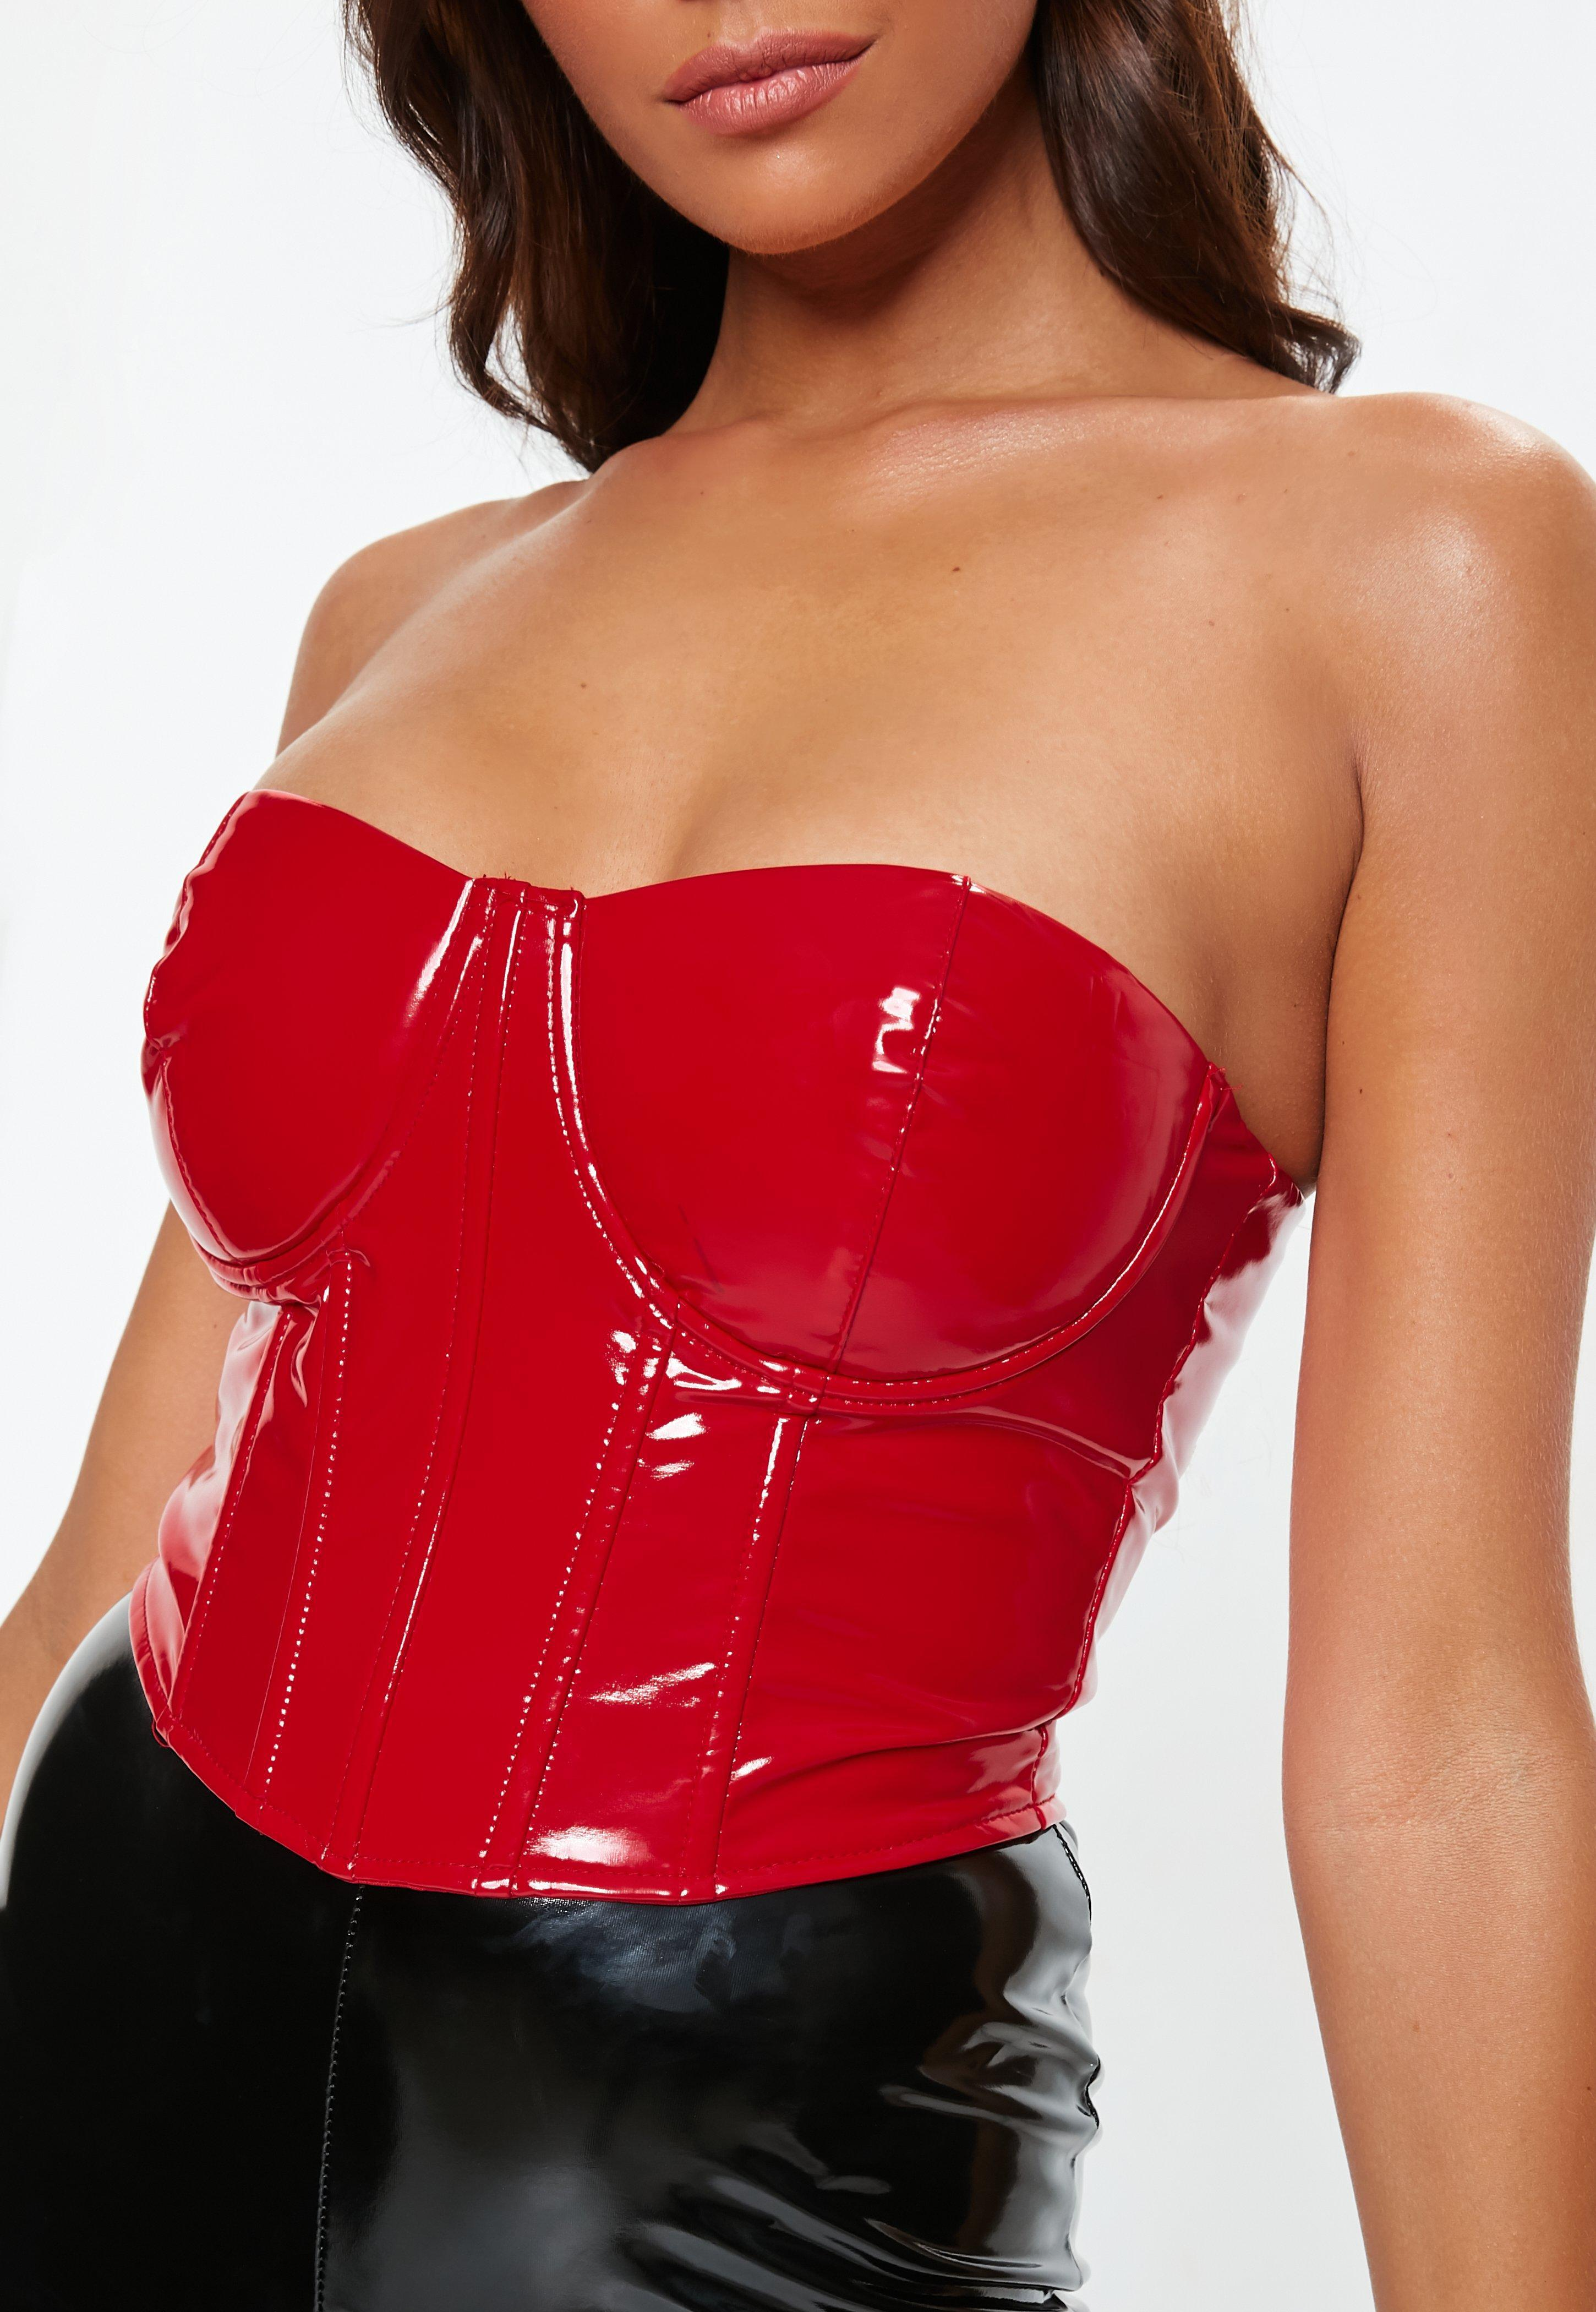 927e0cfd236f94 Lyst - Missguided Red Vinyl Corset in Red